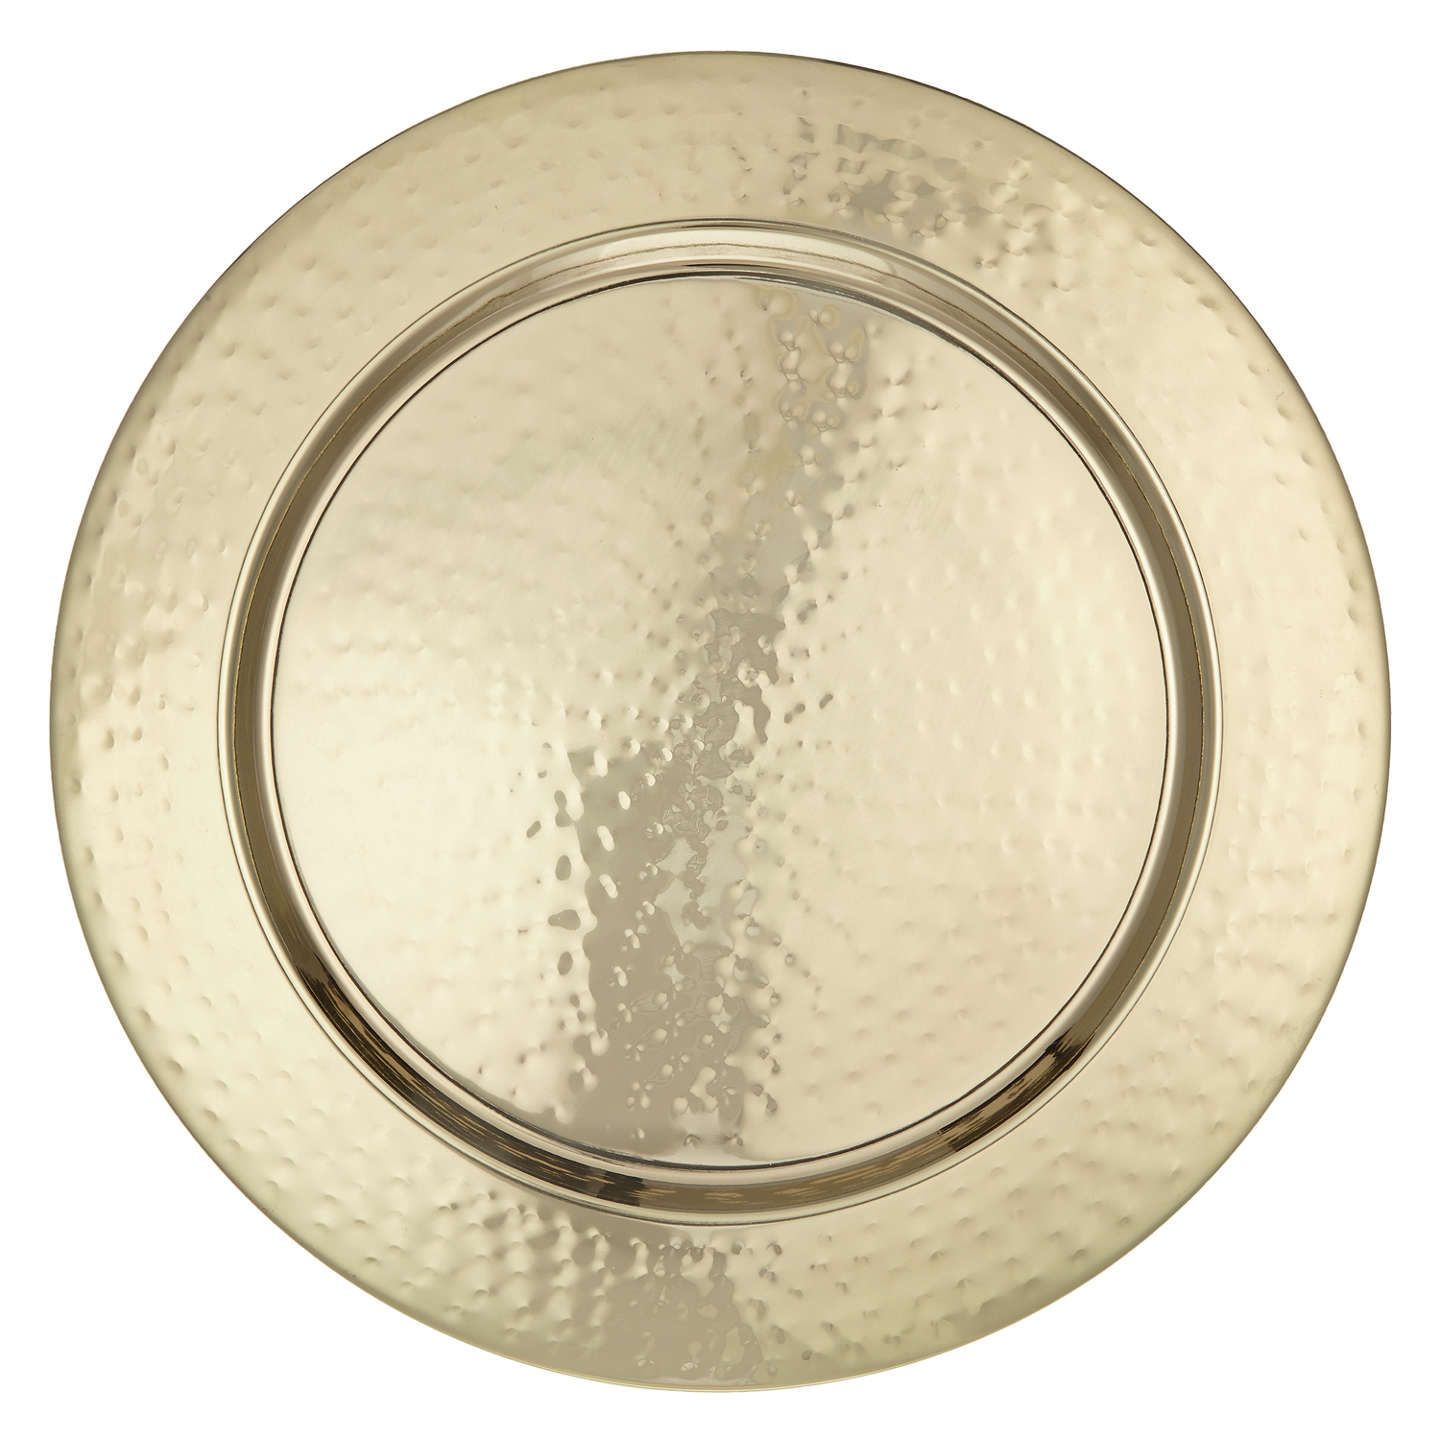 Ideal John Lewis Fusion Hammered Metal Charger Plate, Dia.33cm at John Lewis EE81